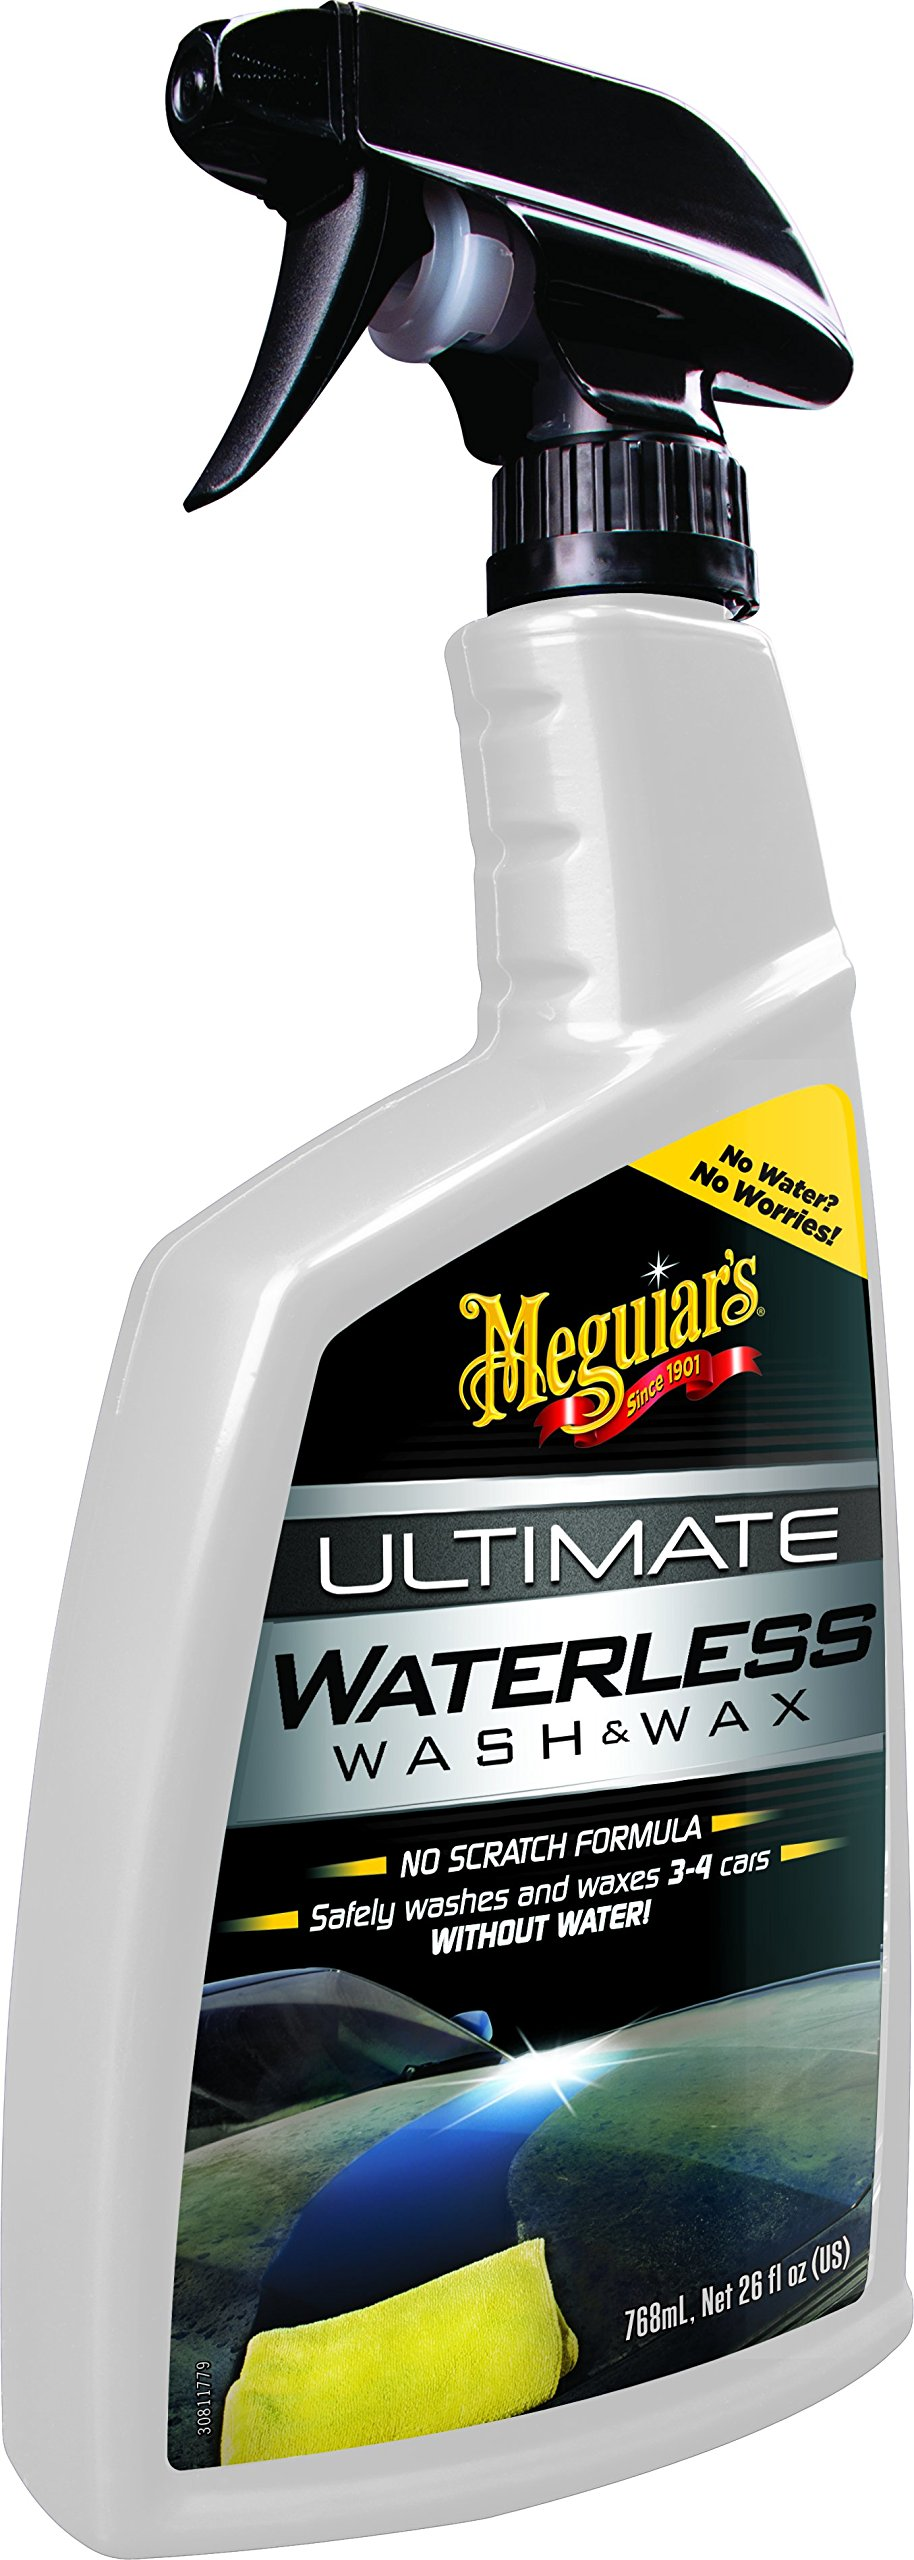 Meguiar's G3626EU Ultimate Waterless Wash & Wax Trockenwäsche, 768ml von Meguiar's